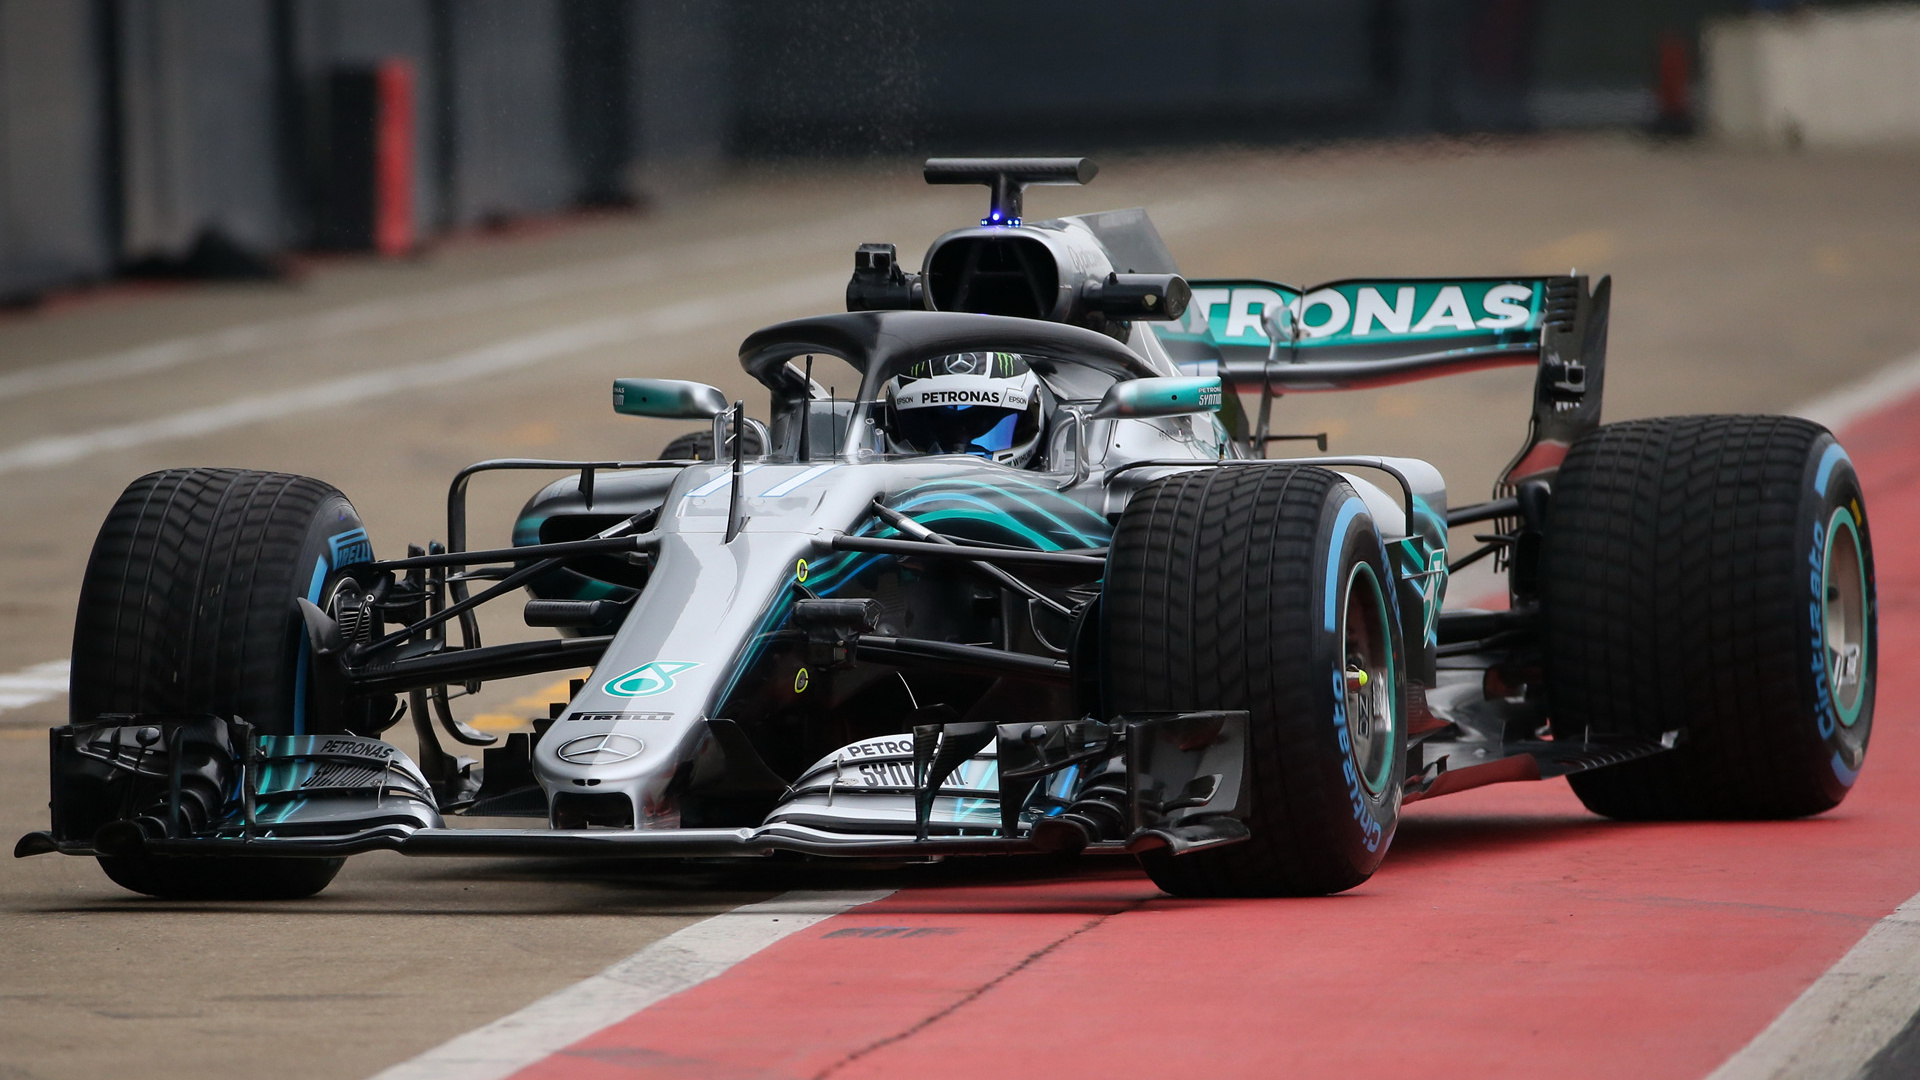 Mercedes f1 wallpaper 1280x800 3